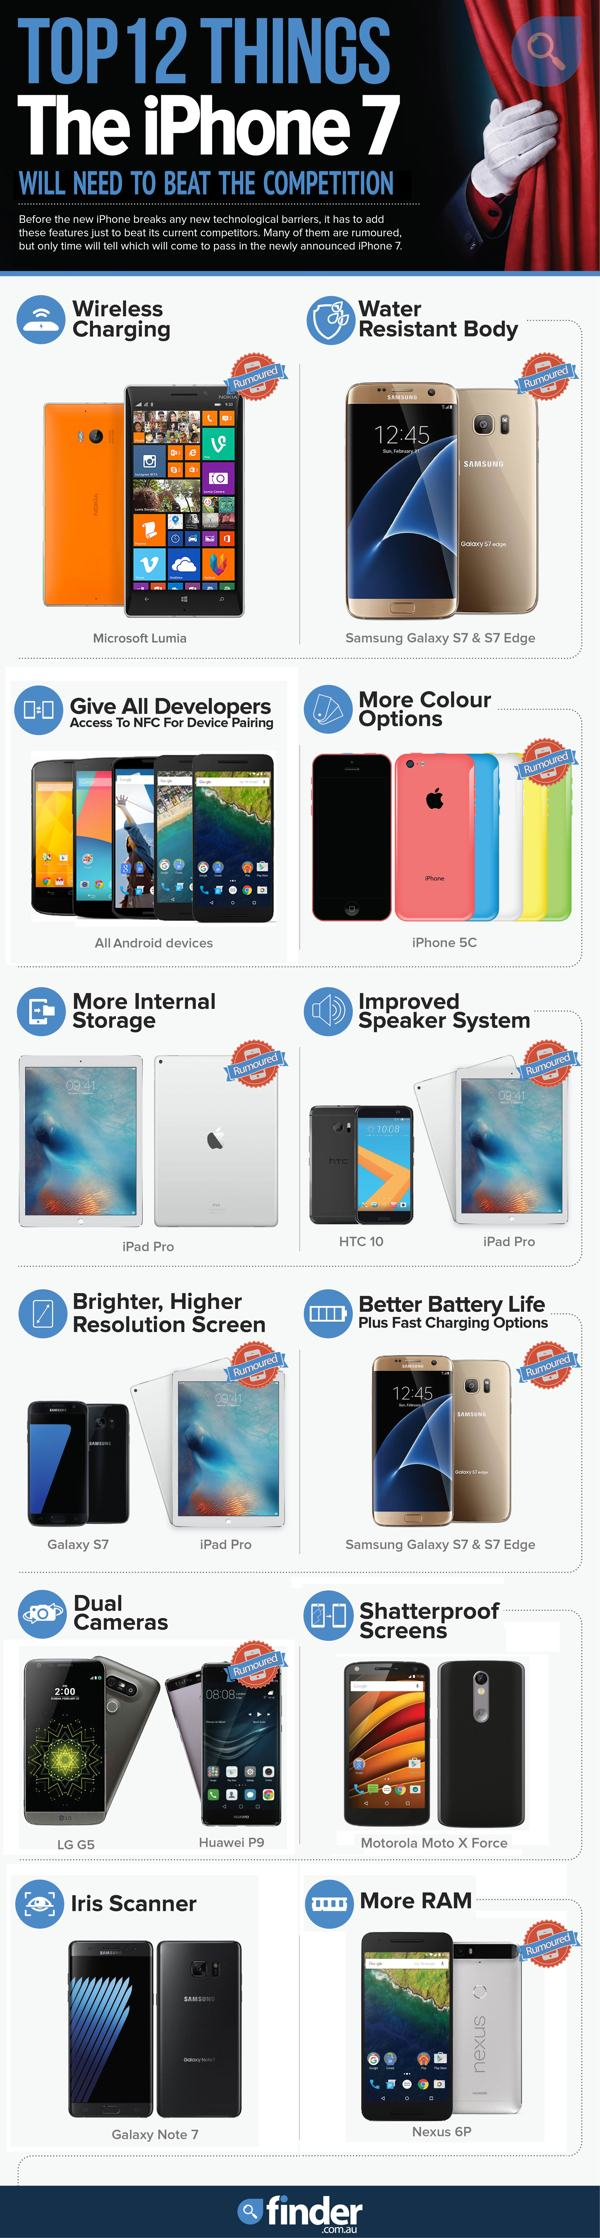 iPhone-7-infographic-our_mod_web_600